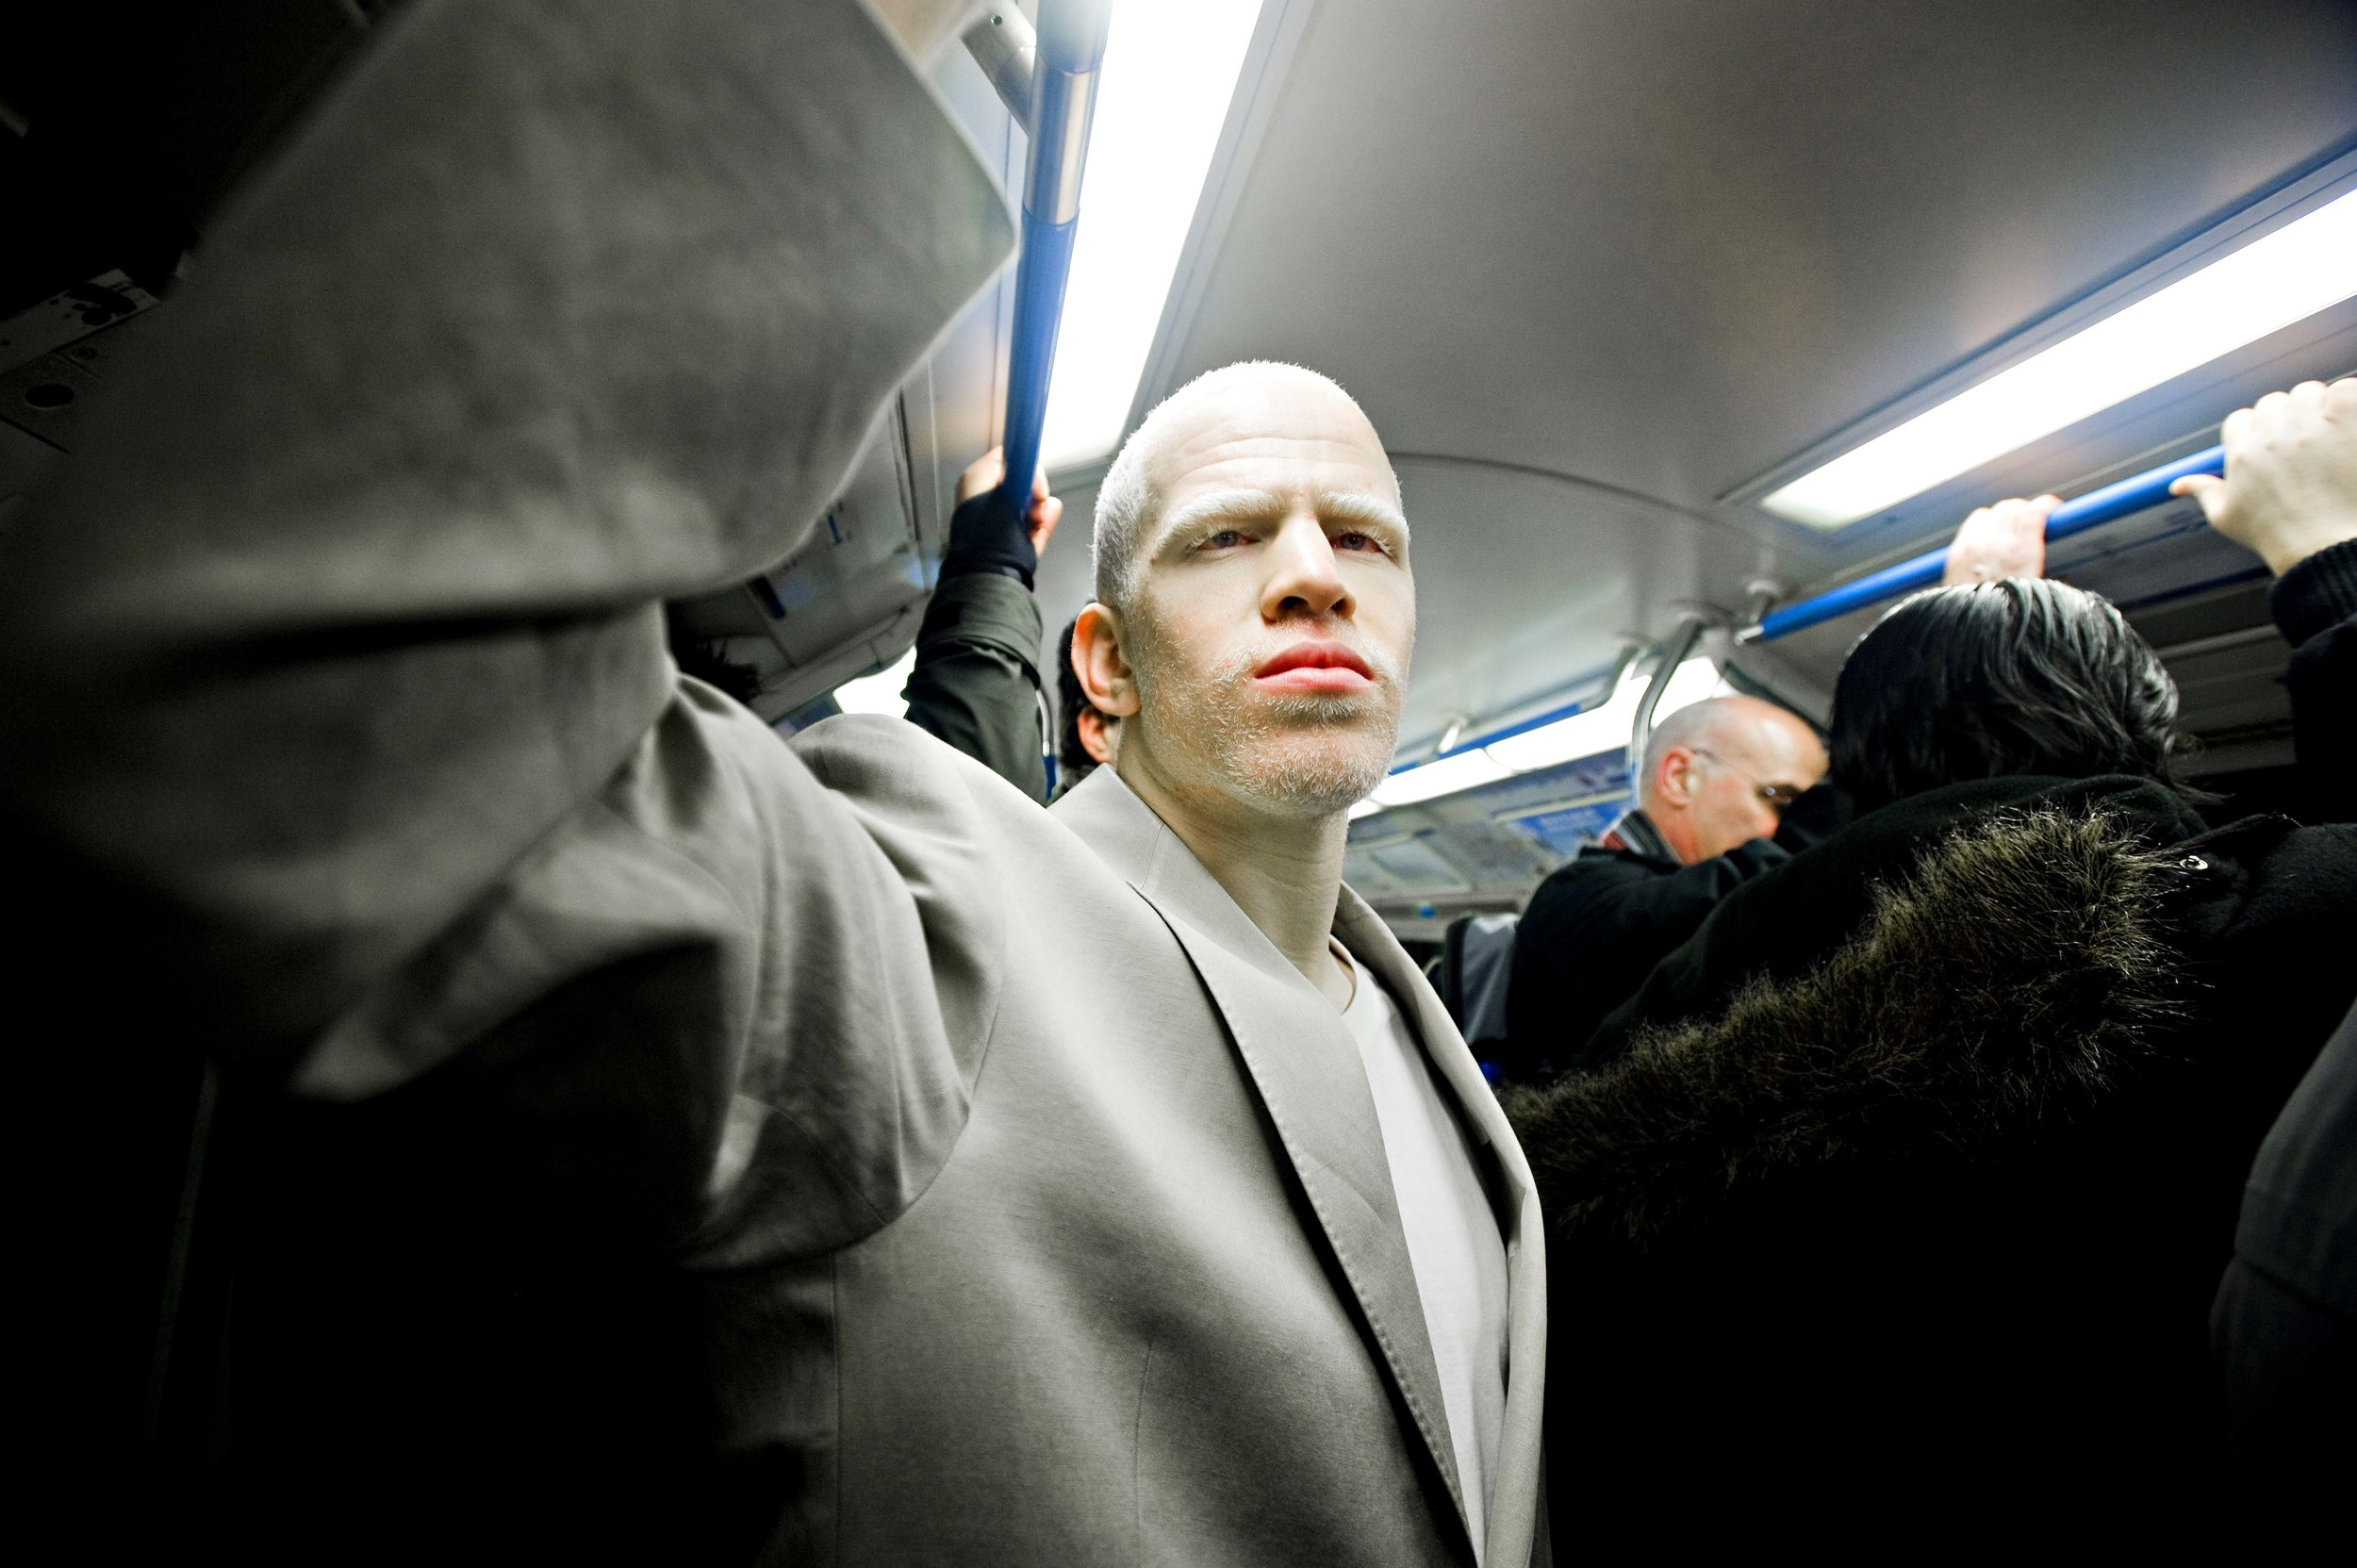 Darnell photographed on London's Underground system.